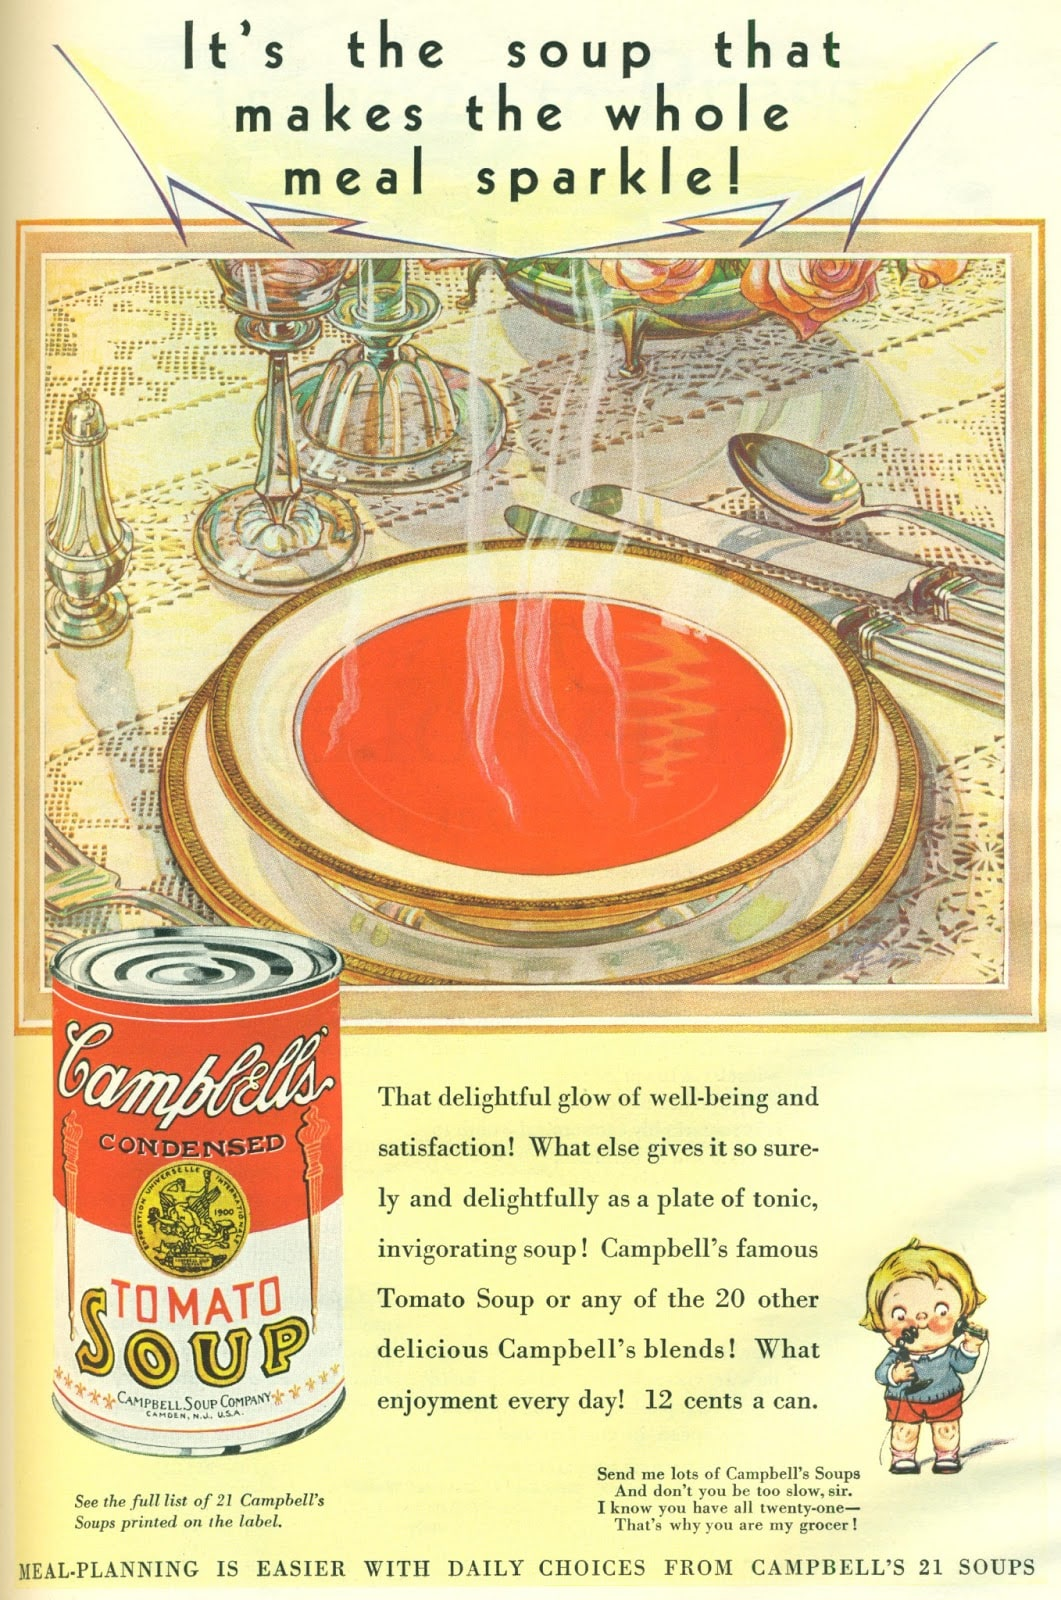 Campbells Tomato Soup ad from 1930